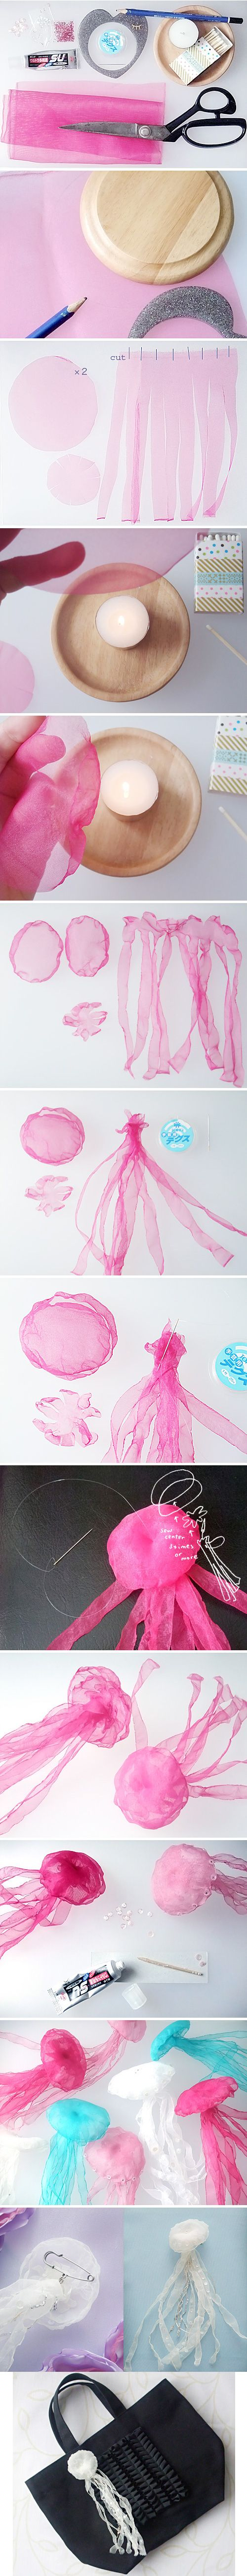 Original post for DIY jellyfish decorations!!  lazycraft: http://lazy-craft.blogspot.jp/2012/10/how-to-make-jellyfish.html